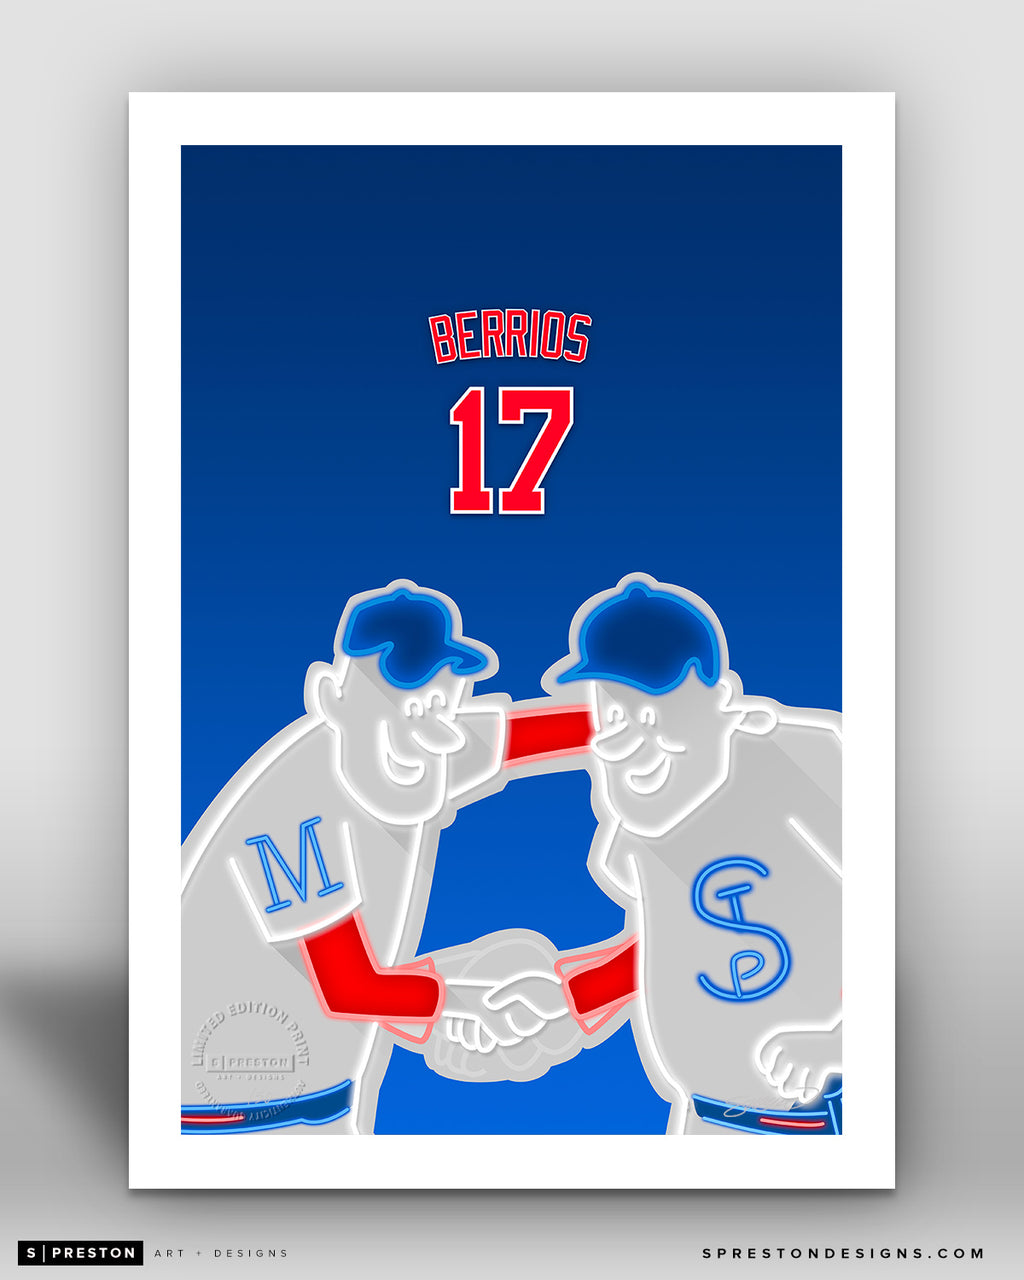 Minimalist Target Field - Player Series - Jose Berrios - Minnesota Twins - S. Preston